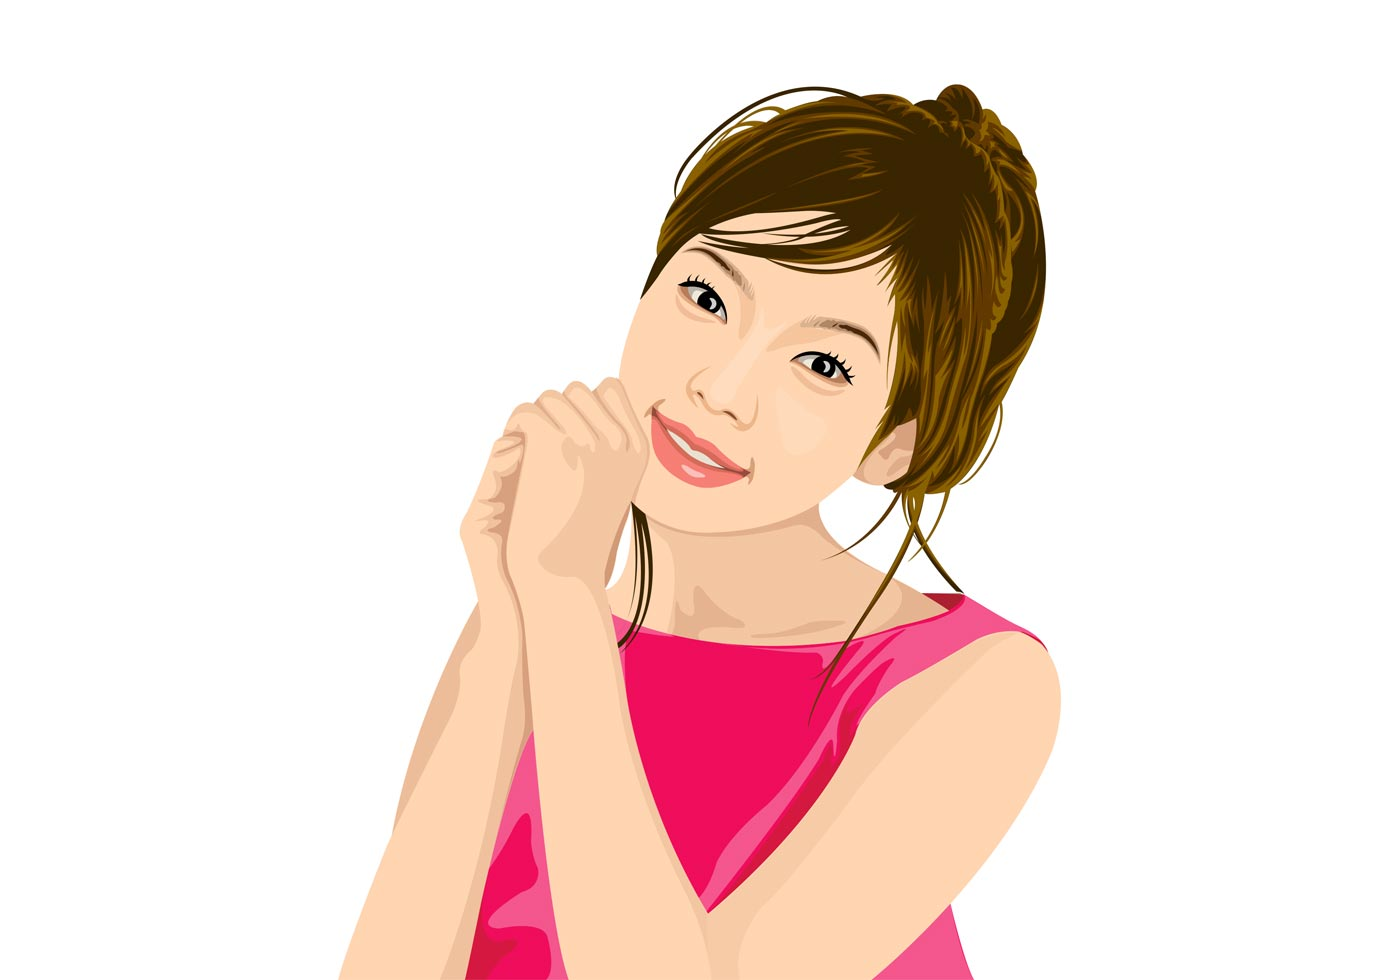 pretty asian girl   download free vector art stock